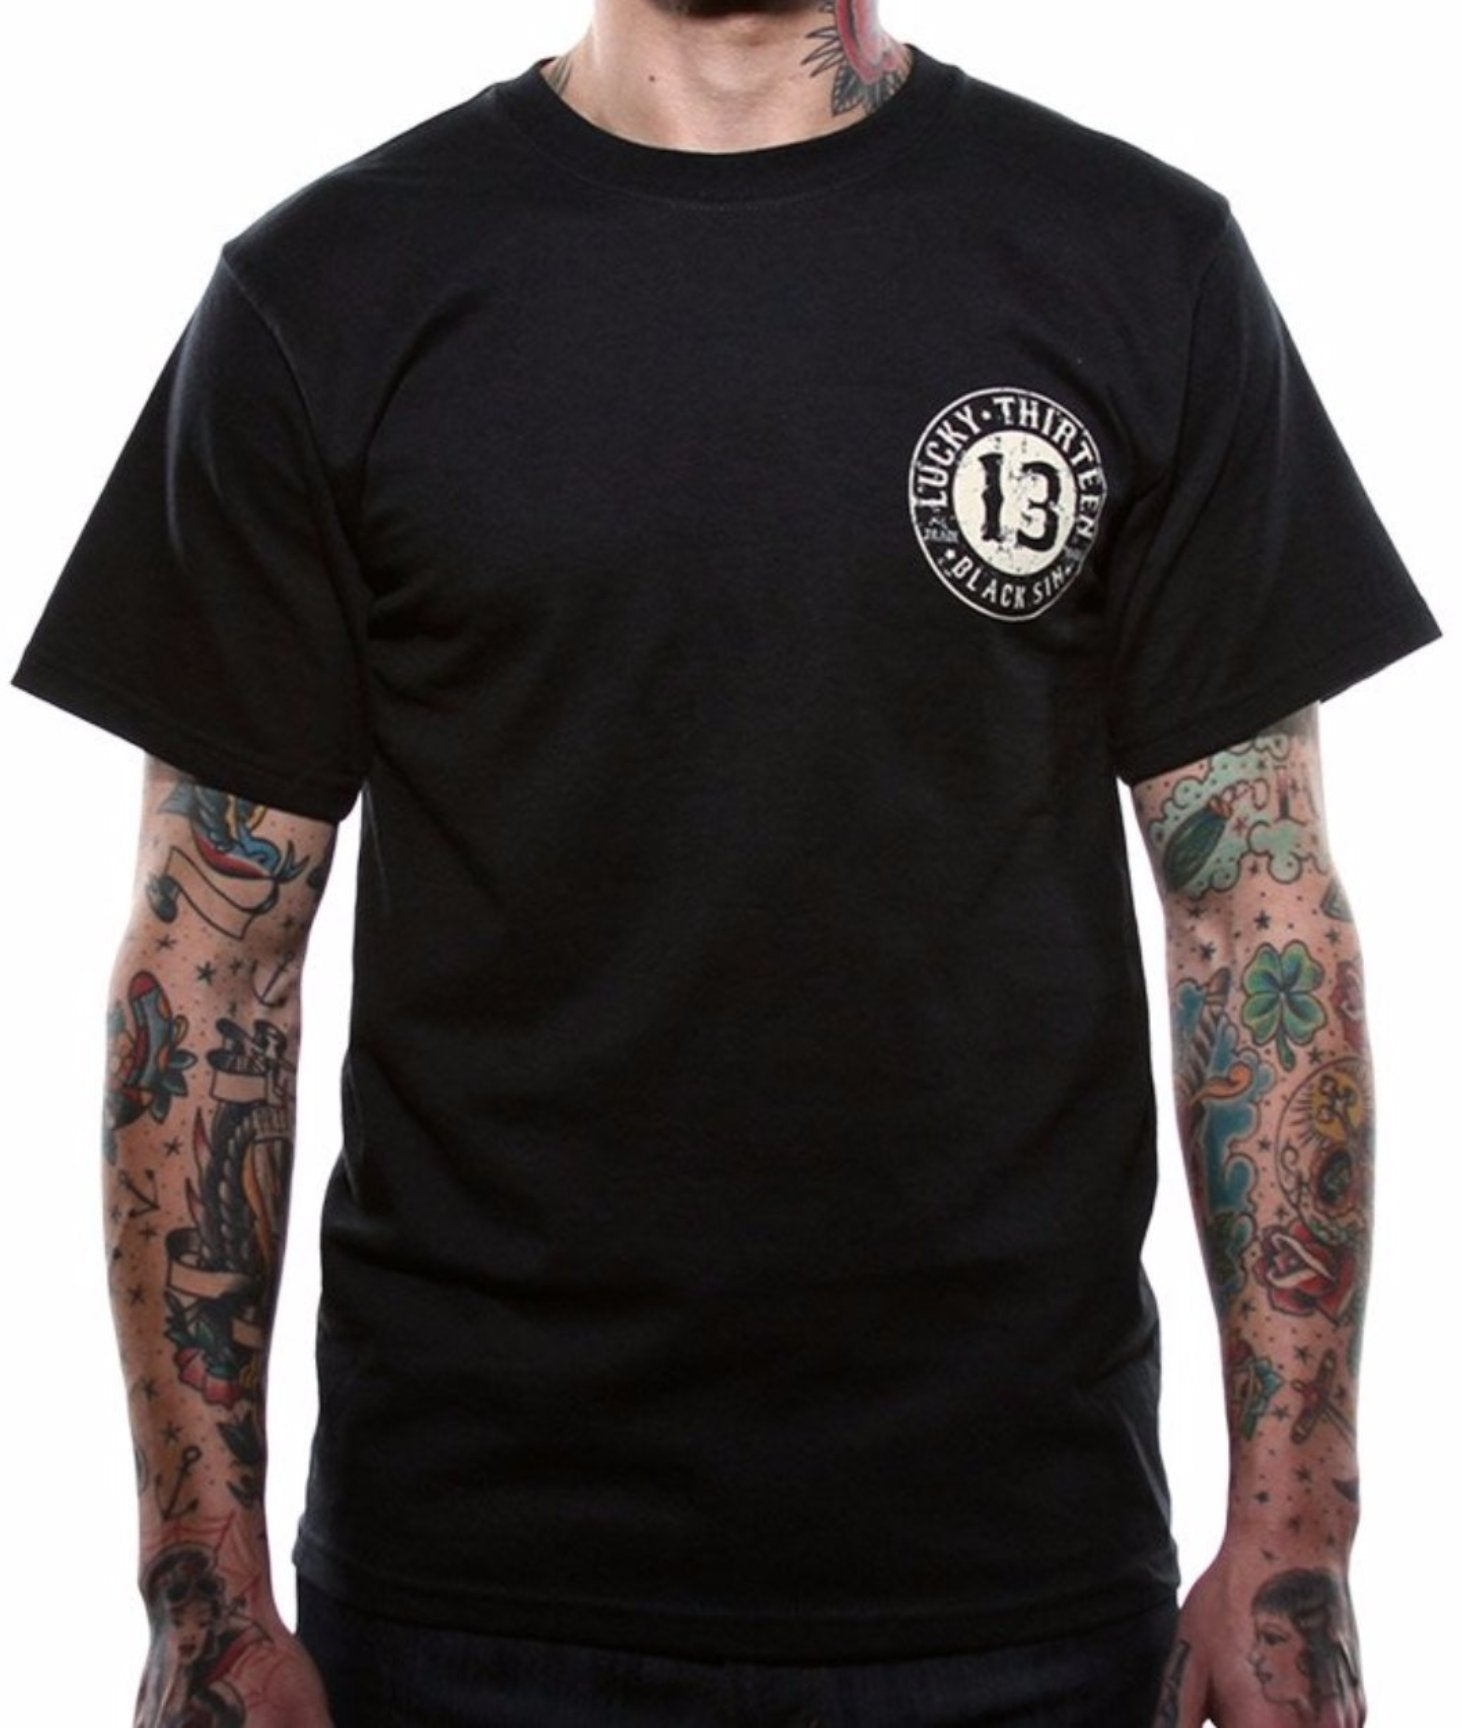 The BLACK SIN Tee Shirt